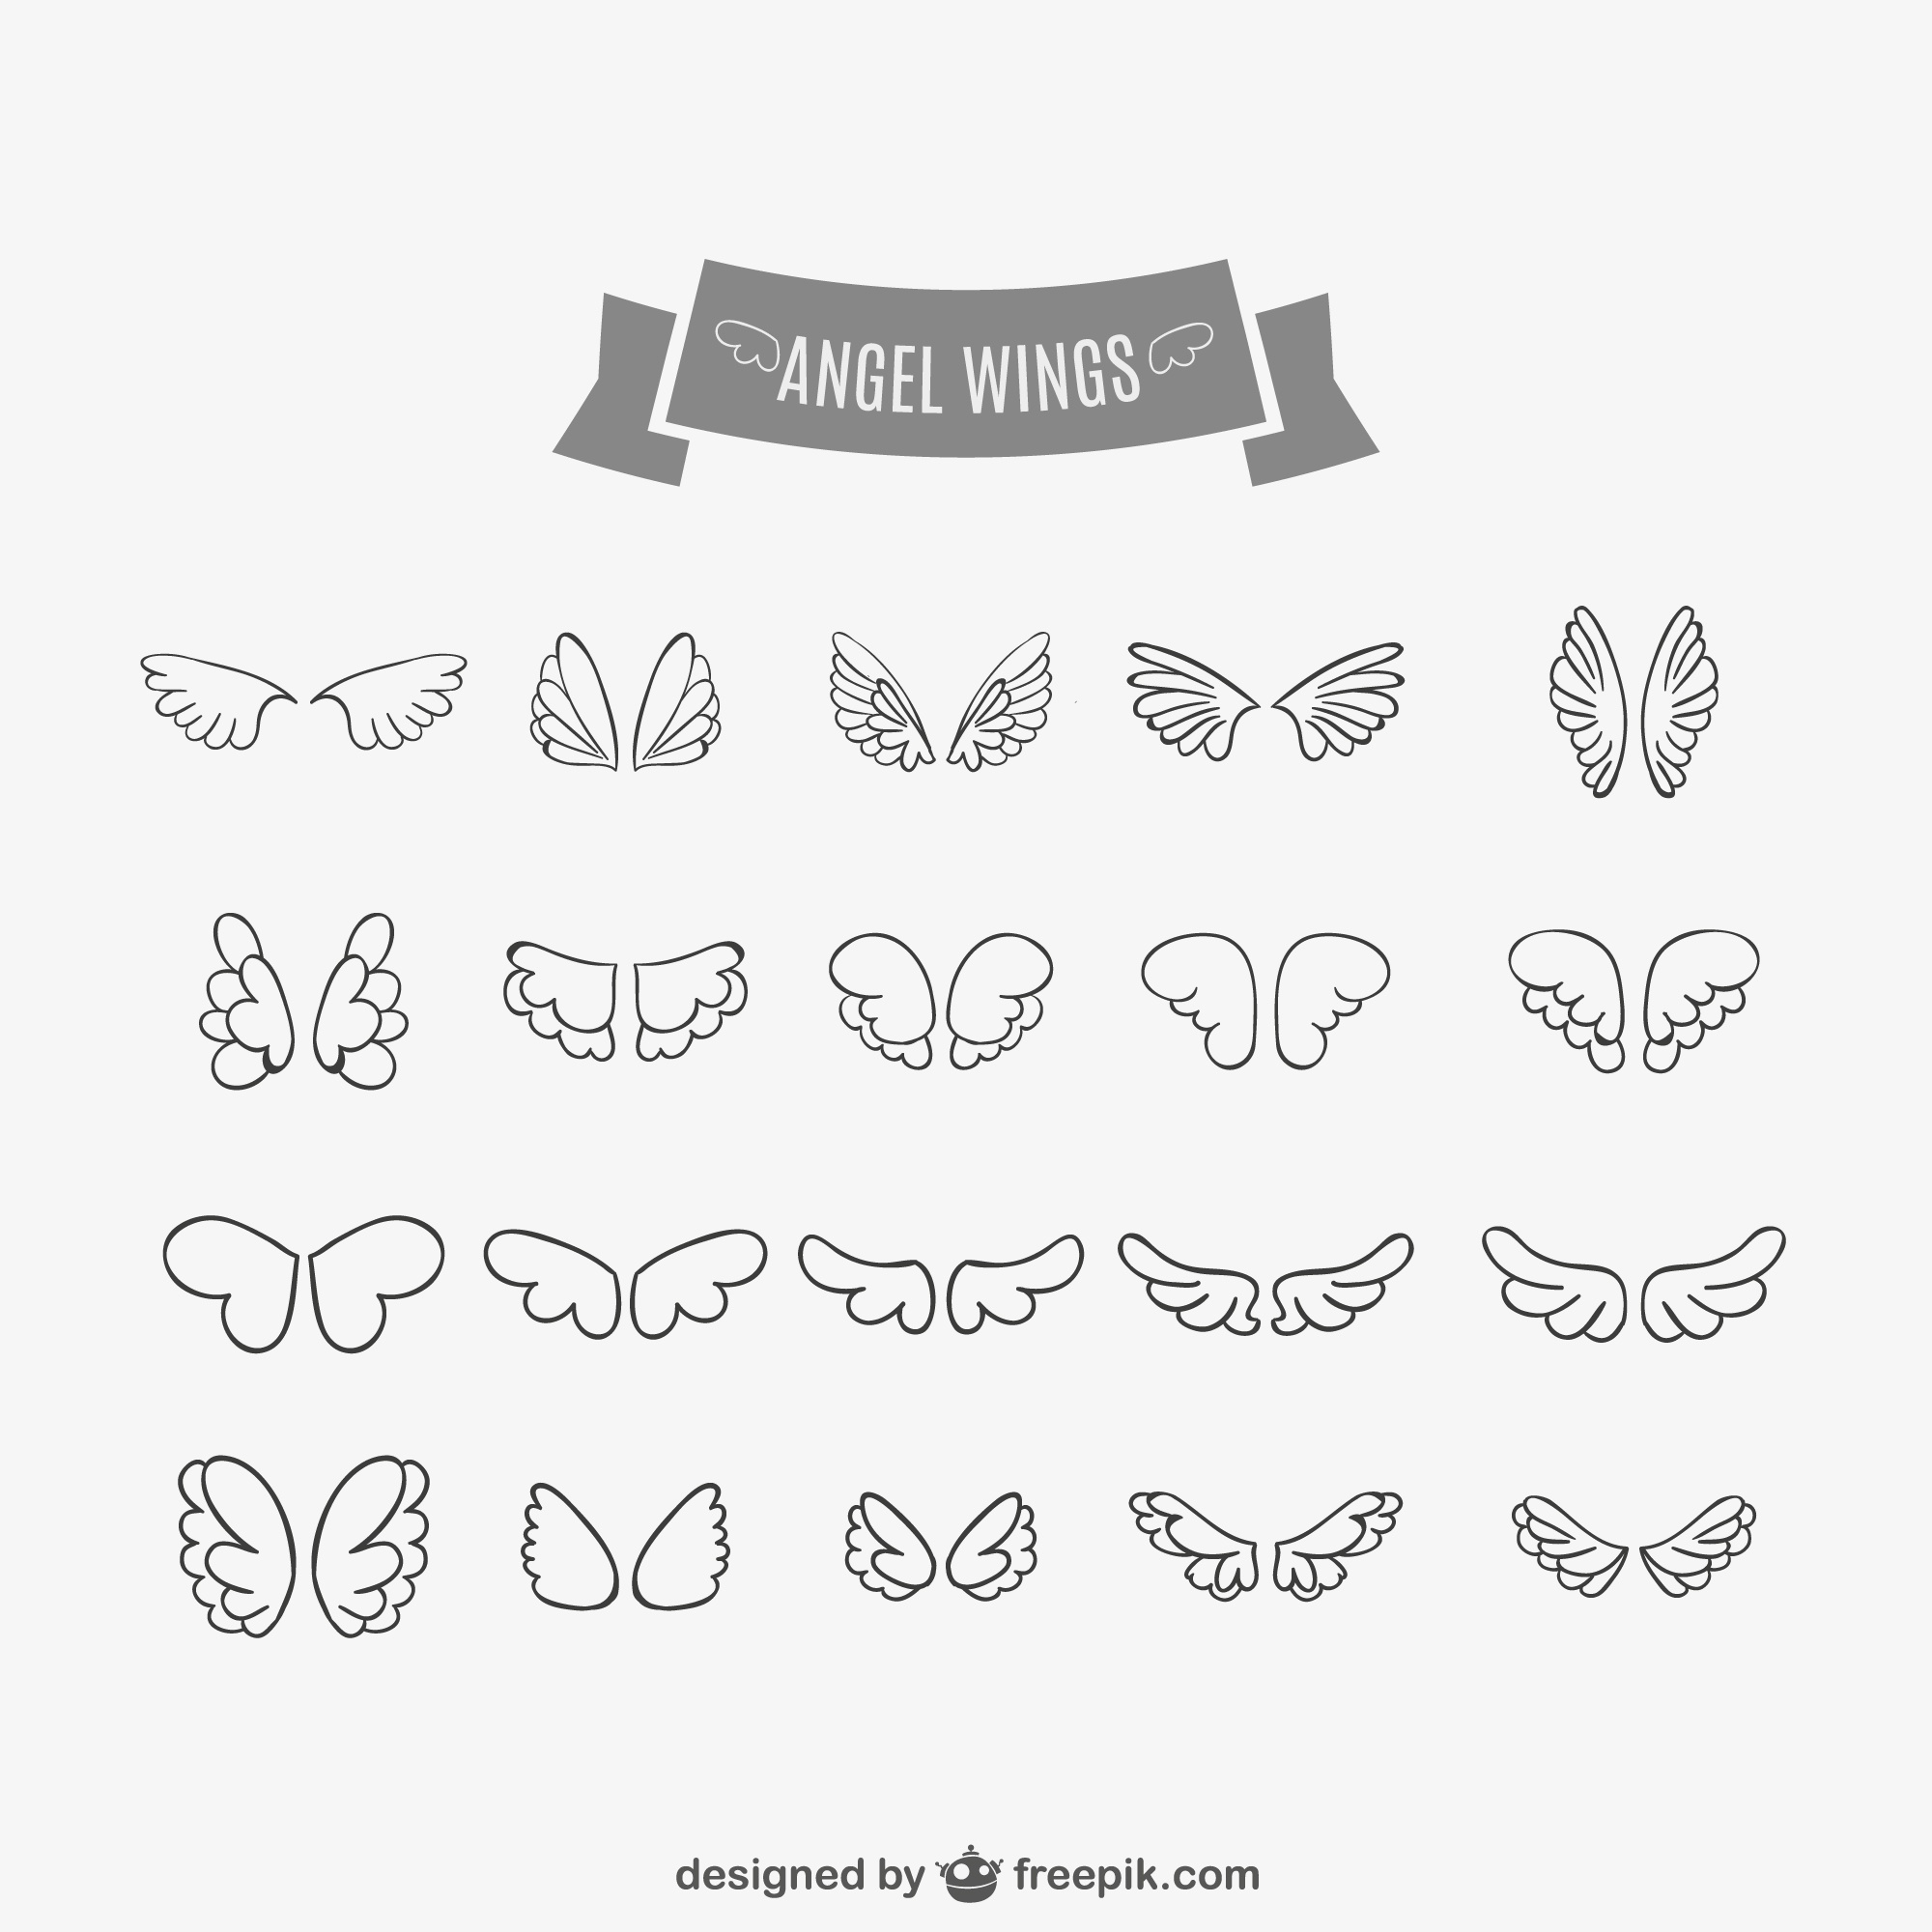 Angel wings doodles set